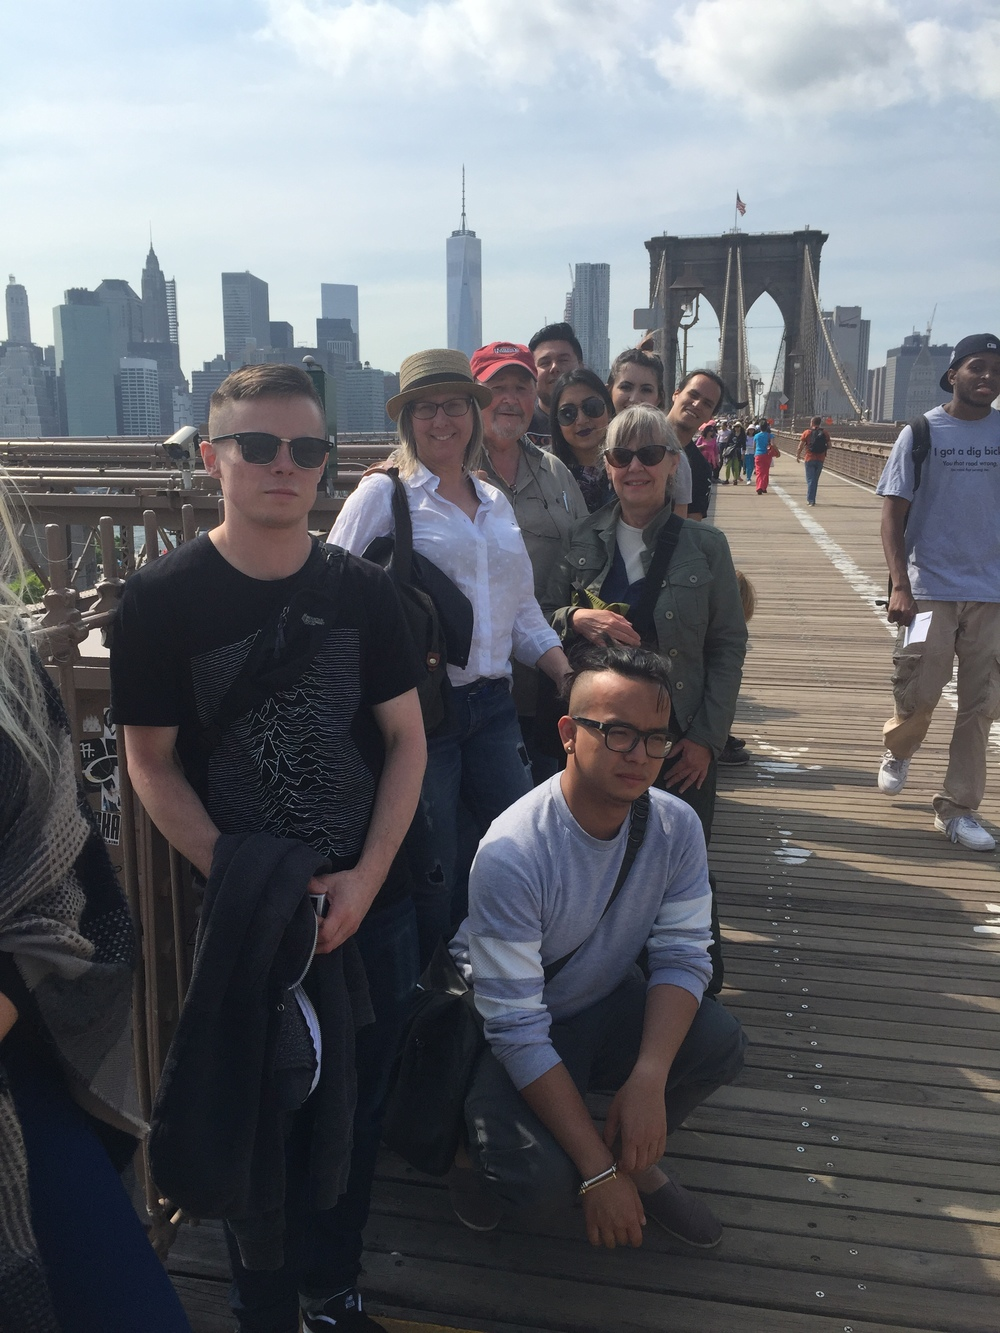 Walking the Brooklyn Bridge was a fantastic opportunity to take in another perspective of the Brooklyn and Manhattan skyline. Eric at the very front of the group.